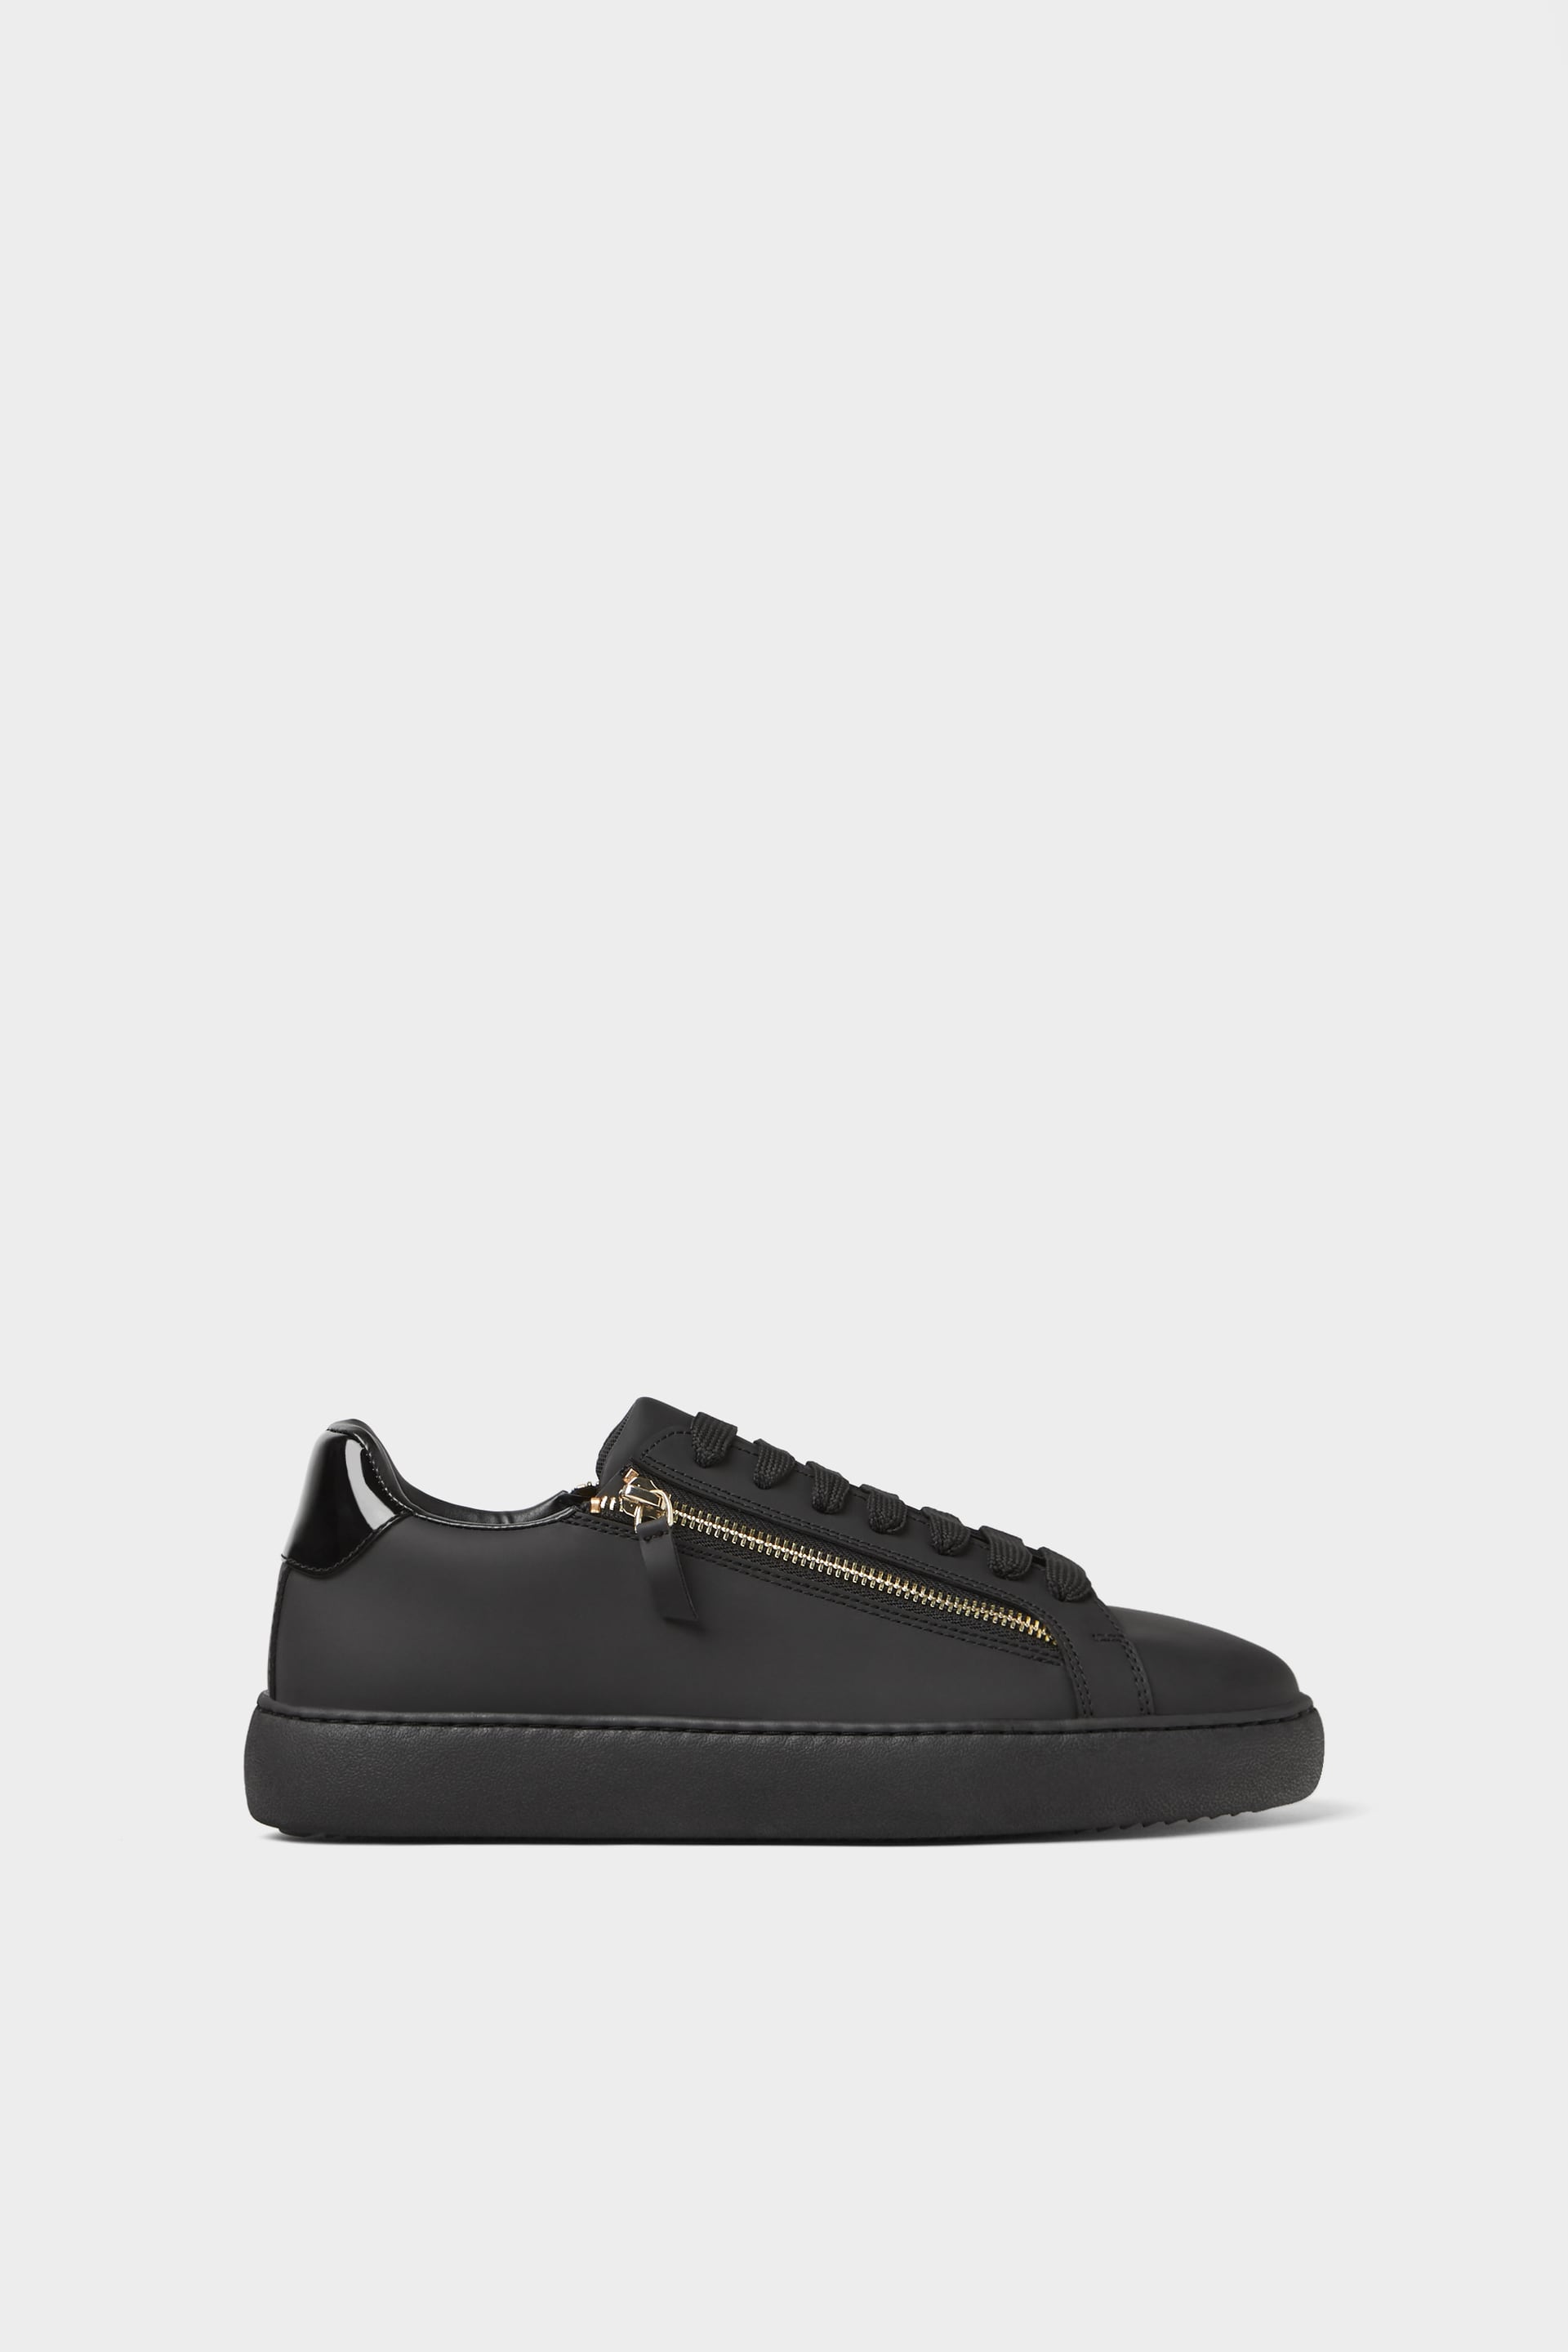 ZIP SNEAKERS - ZARA LIGHT